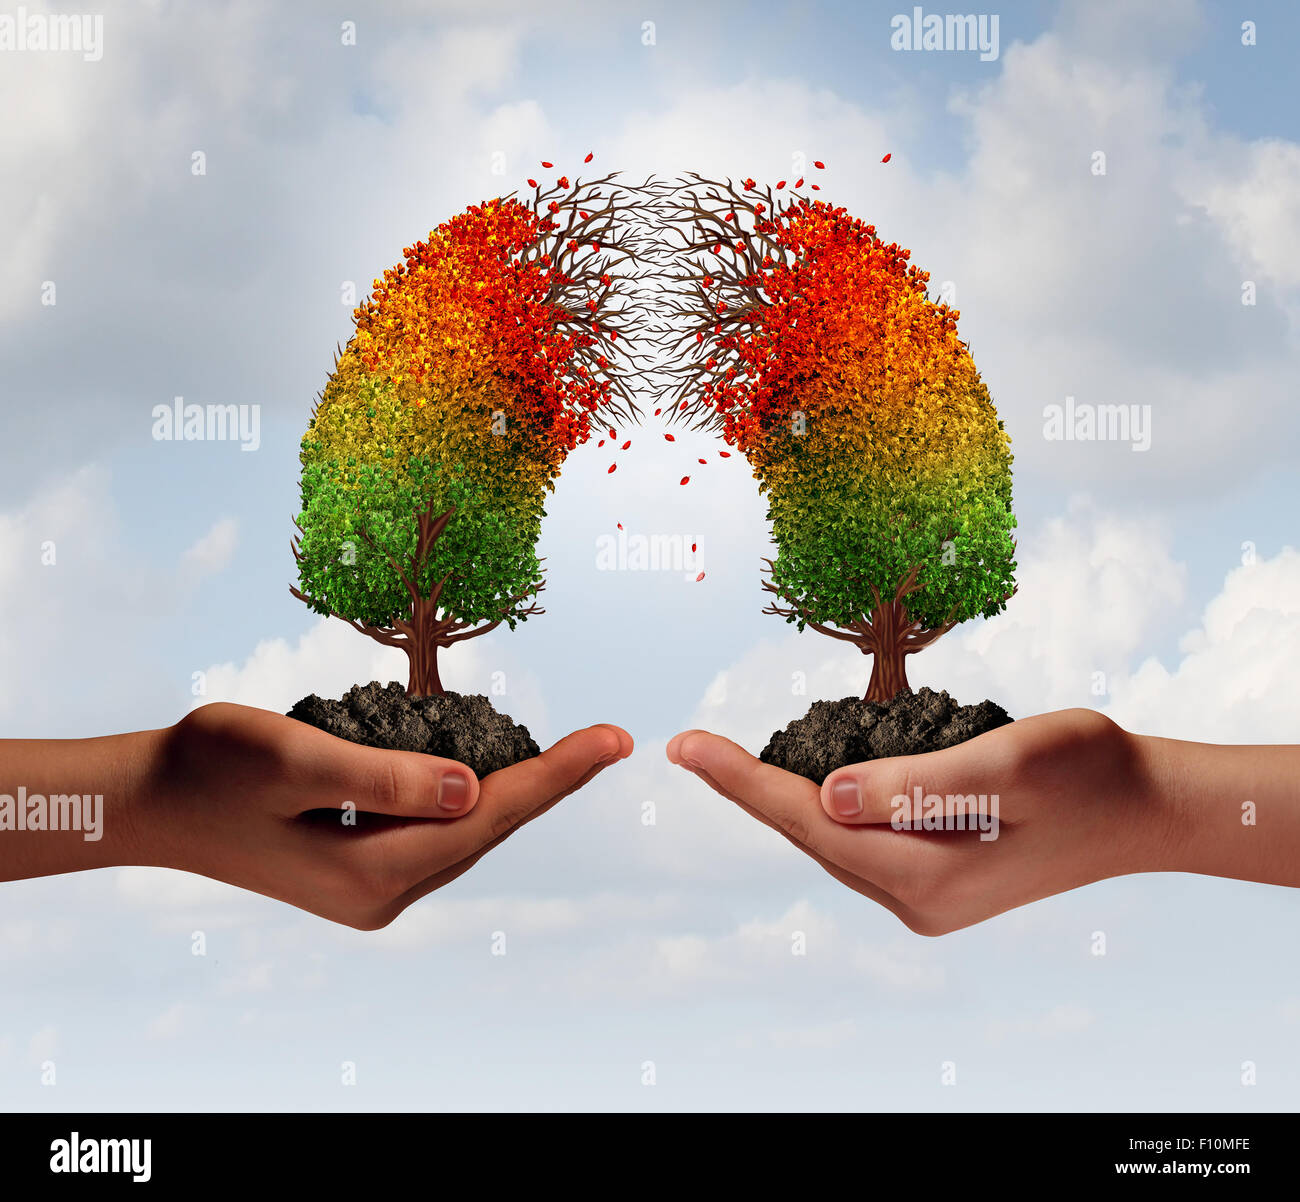 Partnership crisis concept as two people holding connected trees that are decaying in the middle as a business relationship - Stock Image